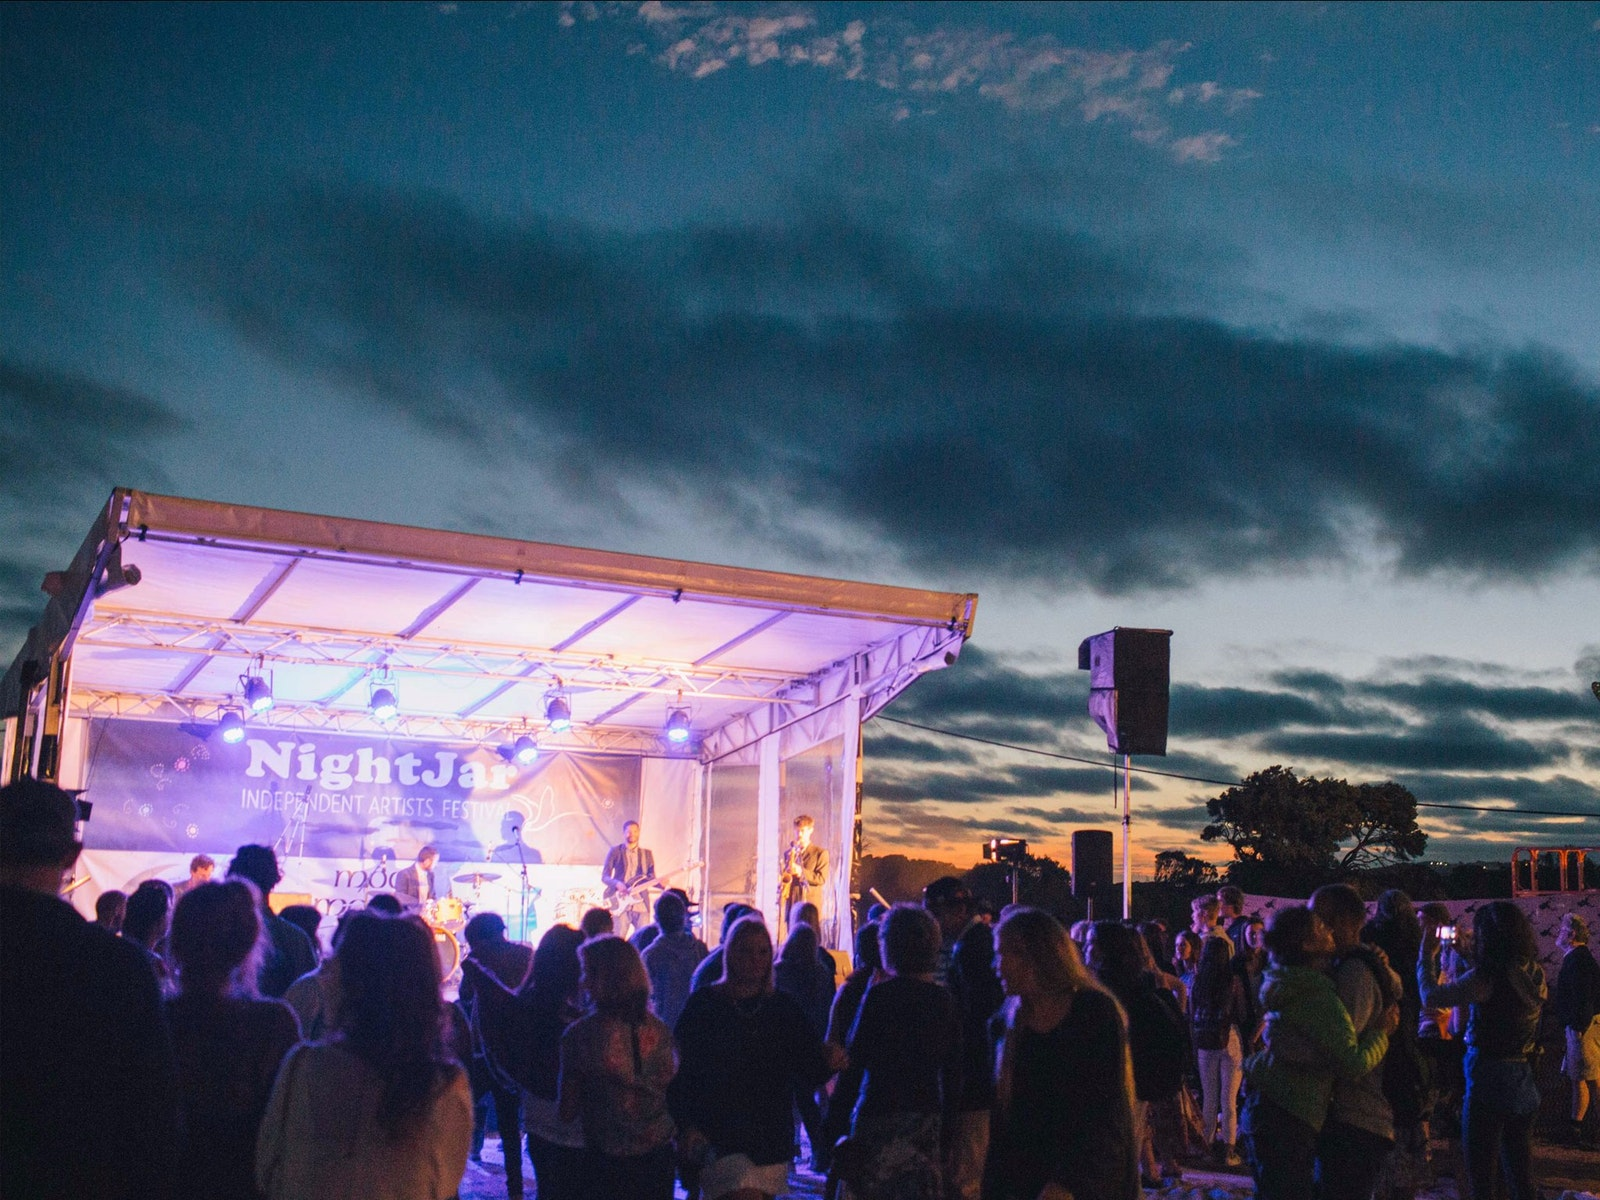 The sun sets behind the Nightjar Festival stage